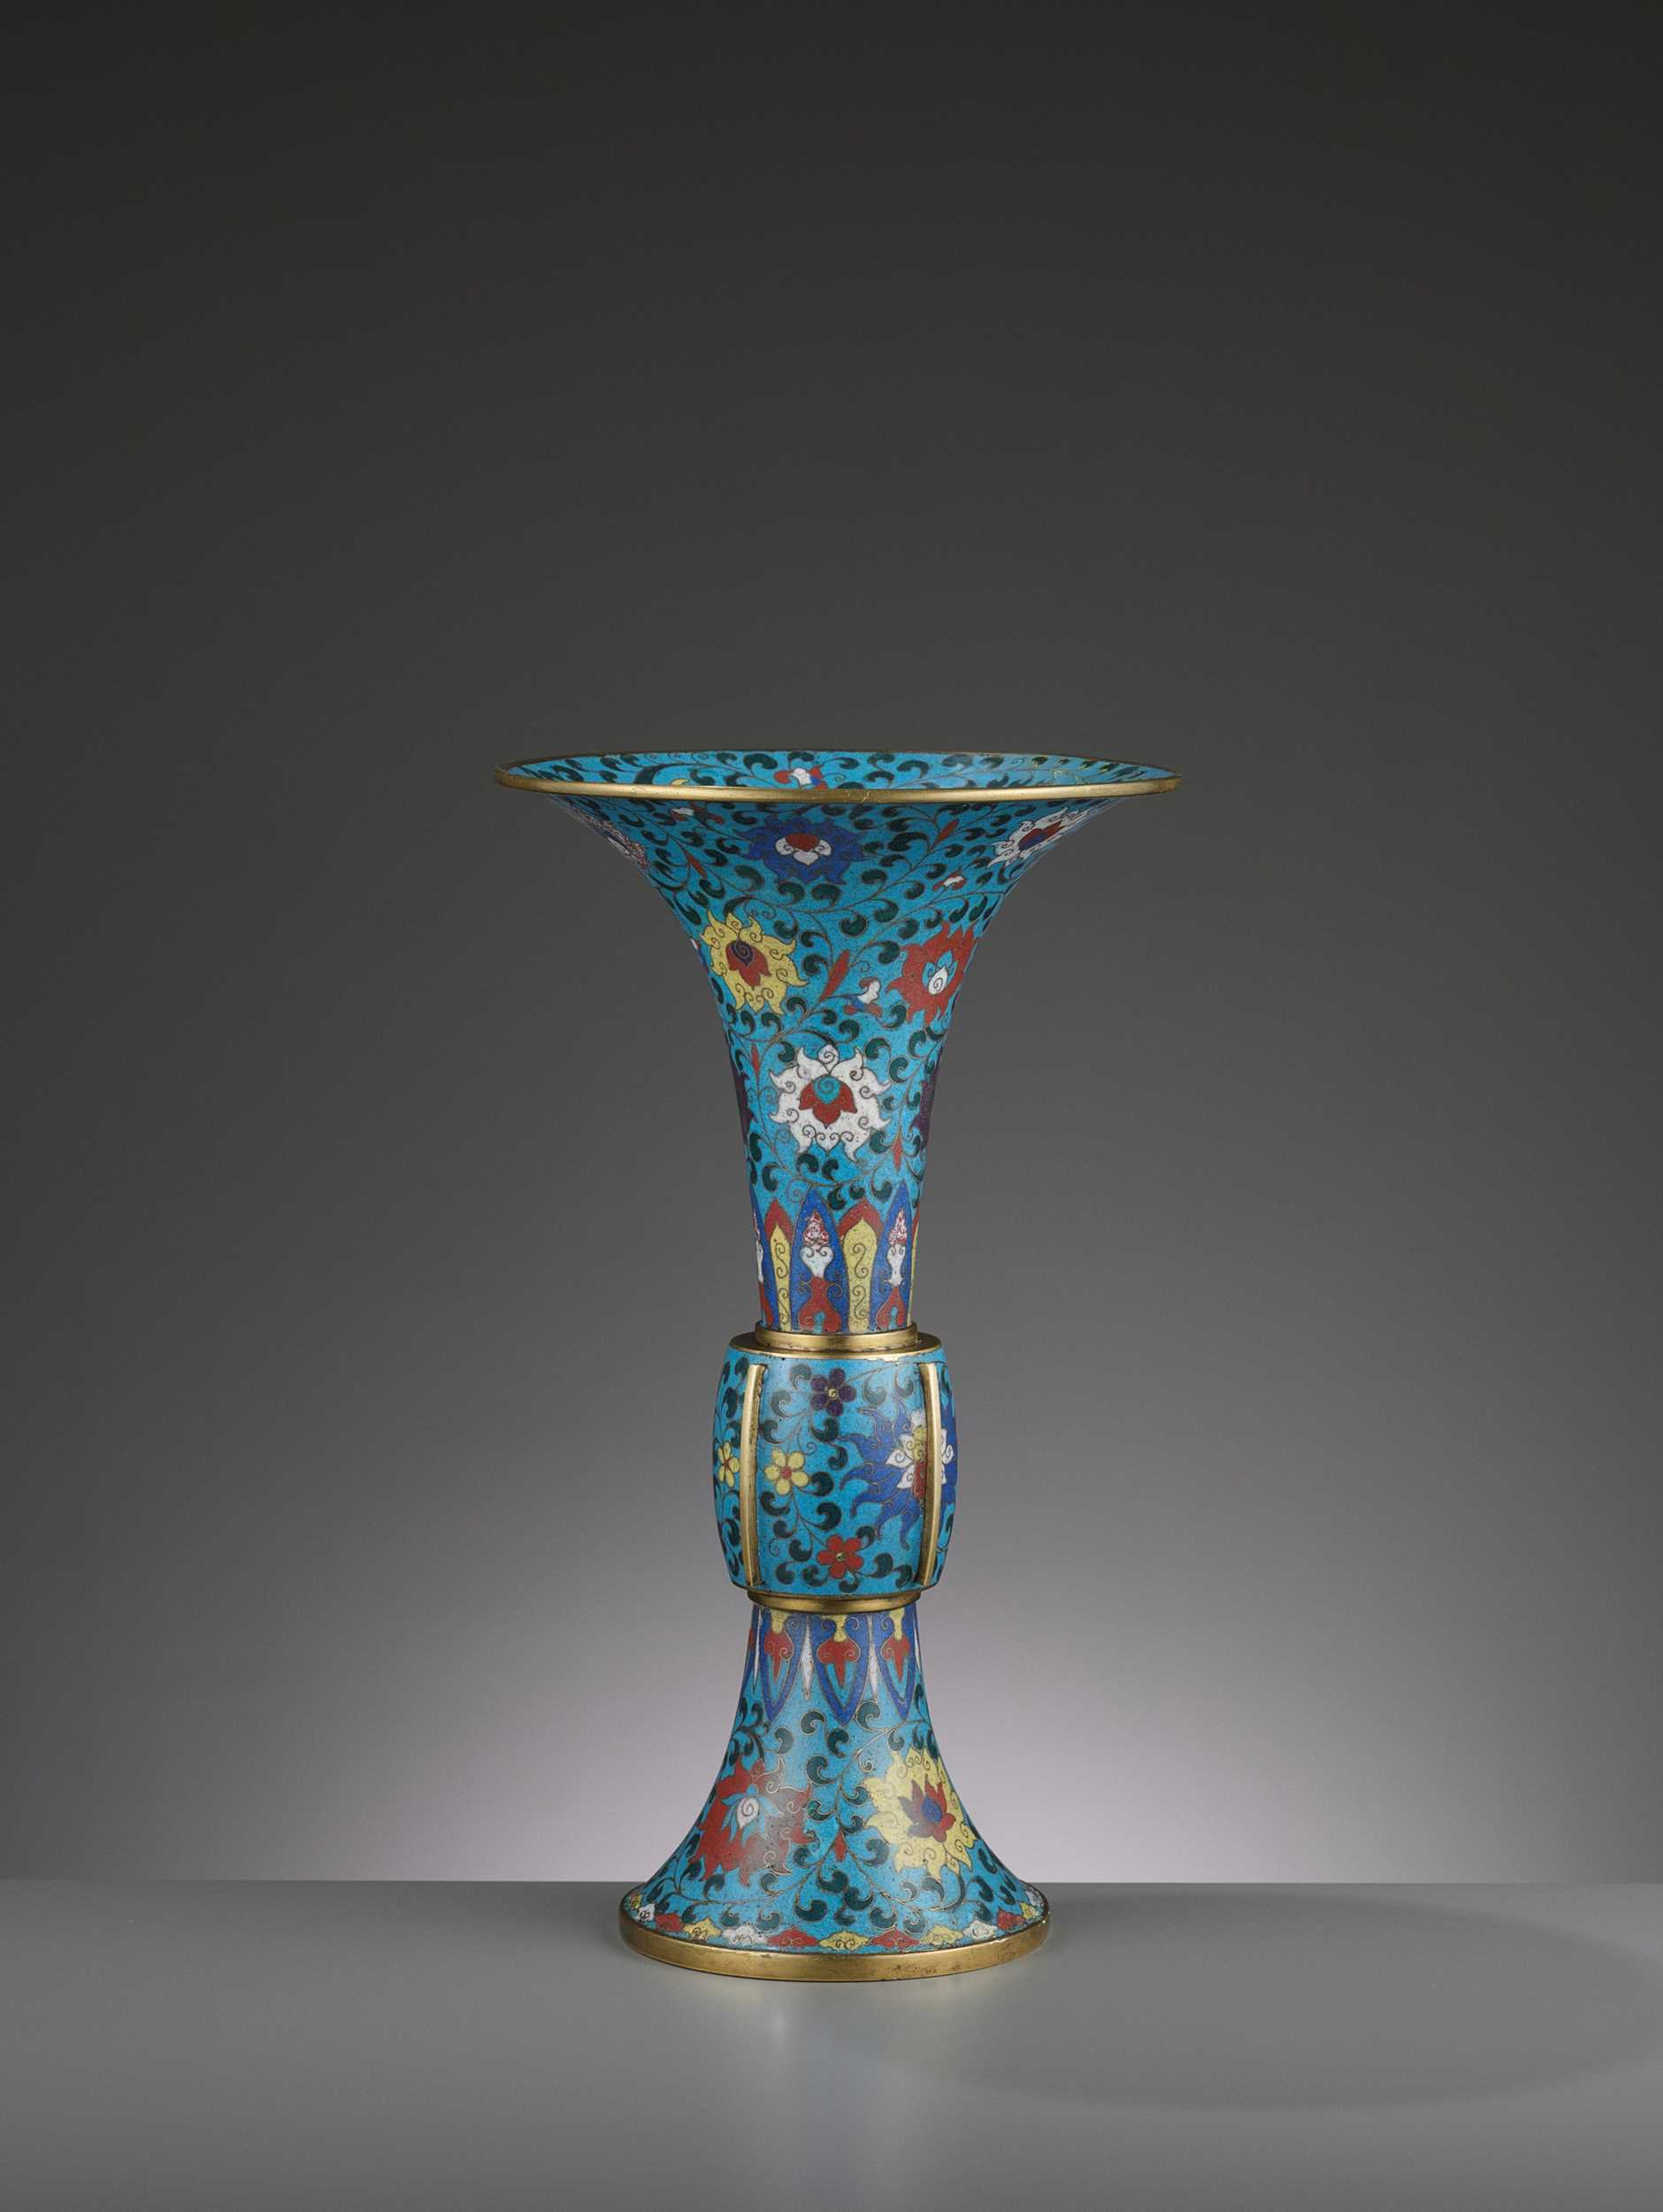 Lot 3 - A LARGE CLOISONNÉ AND GILT-BRONZE GU, QING DYNASTY